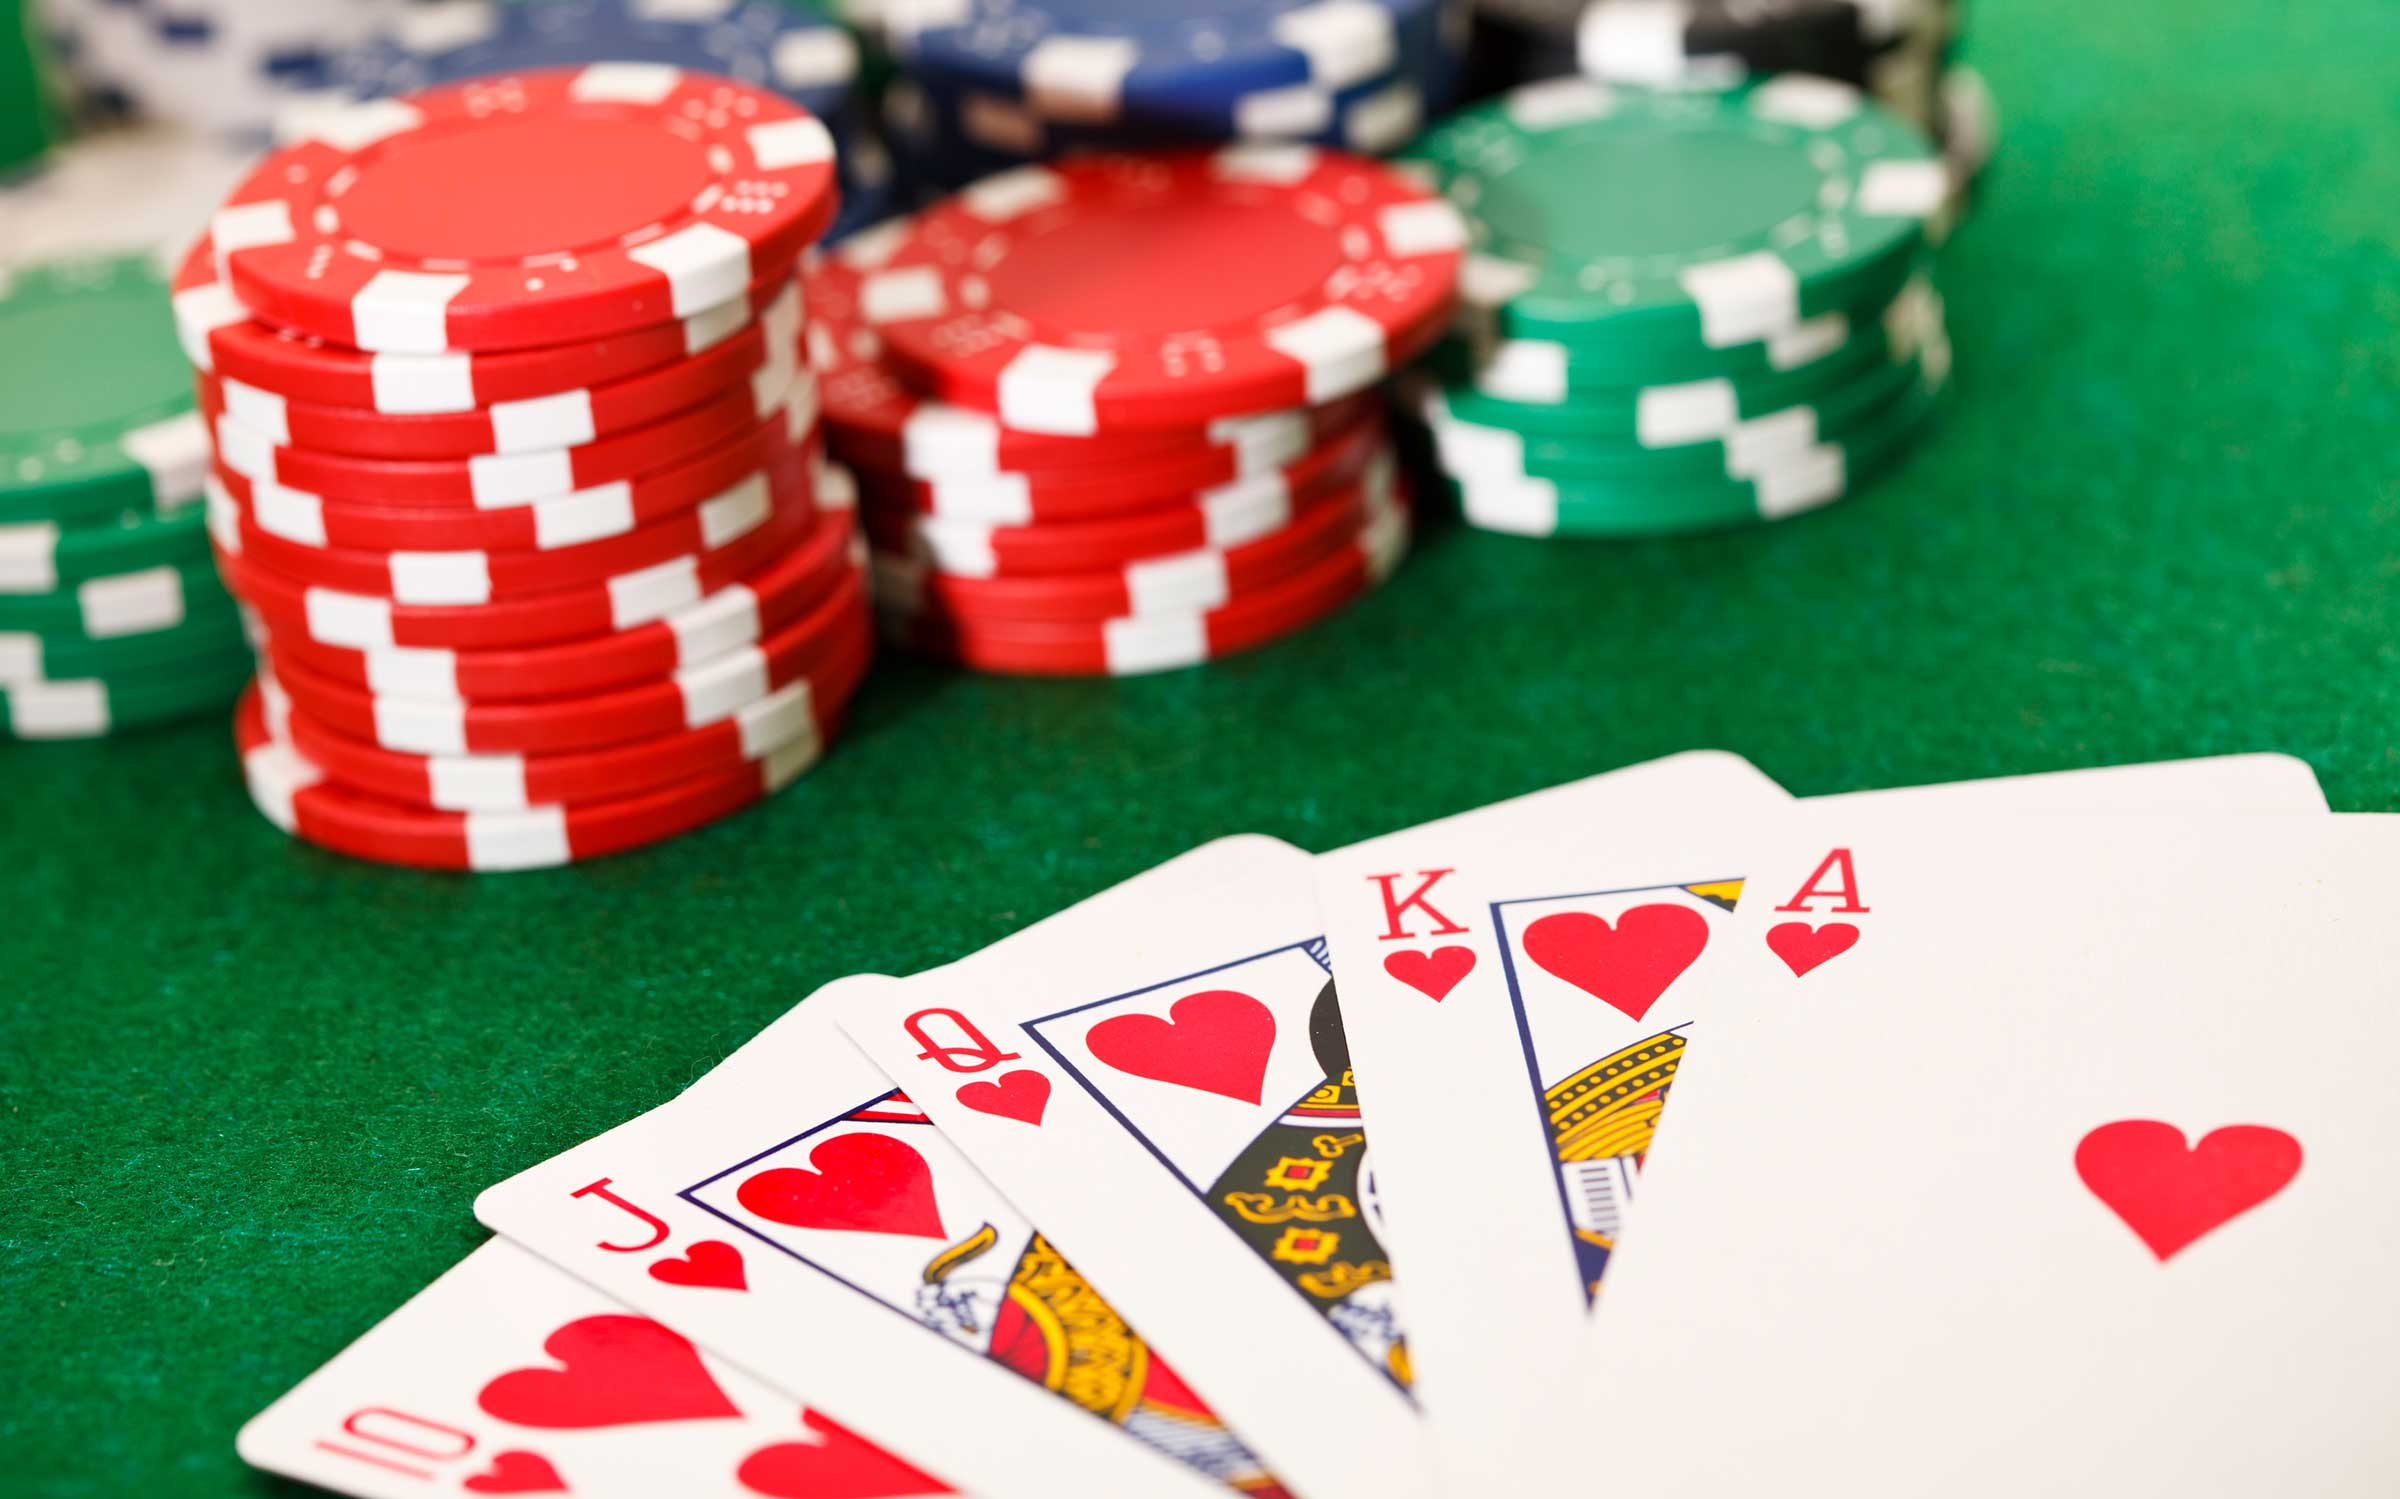 The Tricks of Playing Poker Online